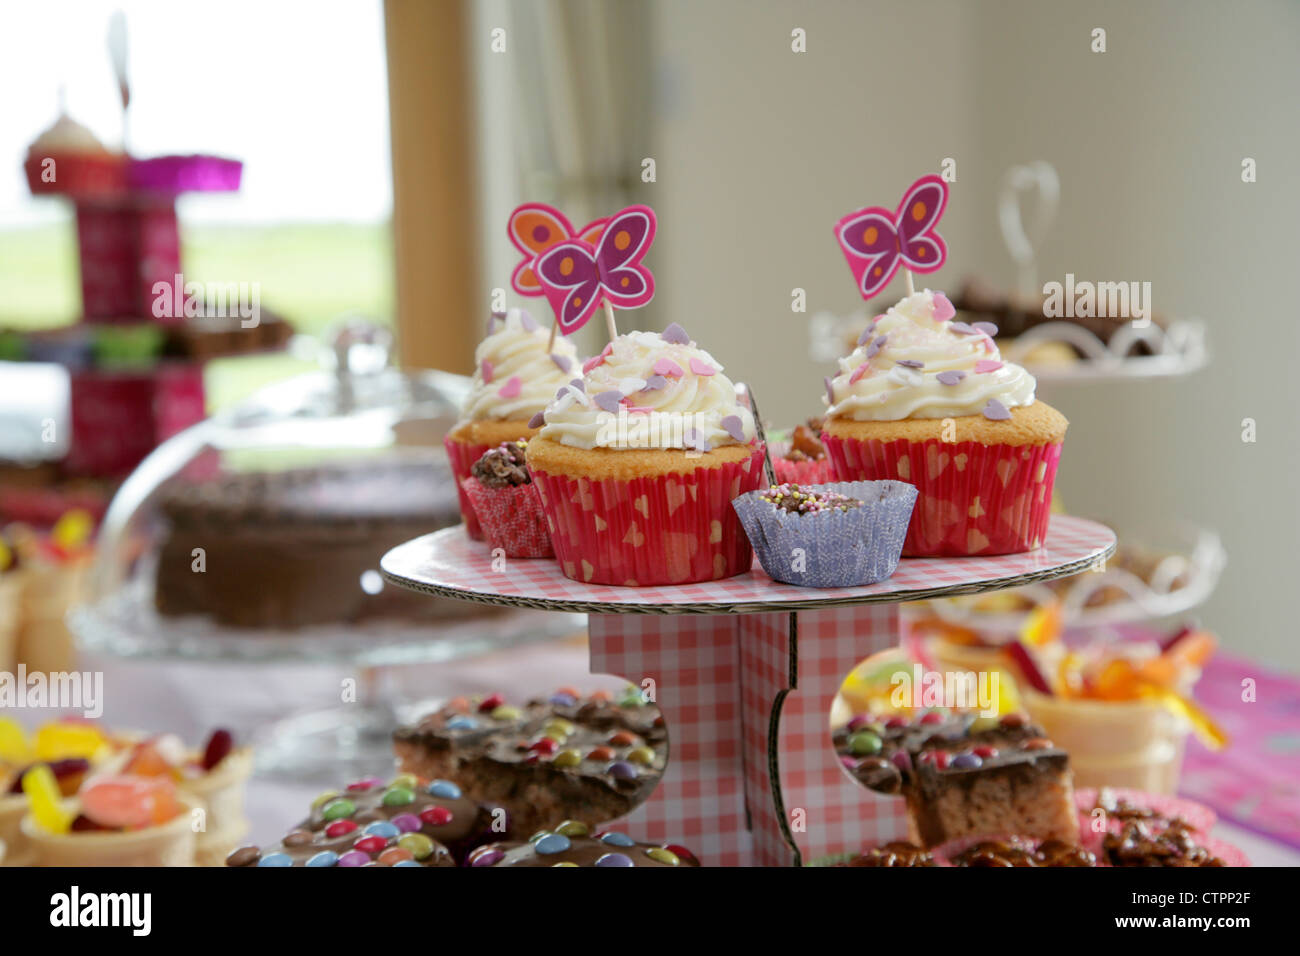 Decorated Cup Cakes On A Stand With Food And Drink Laid Out Table For Young Girls Birthday Party